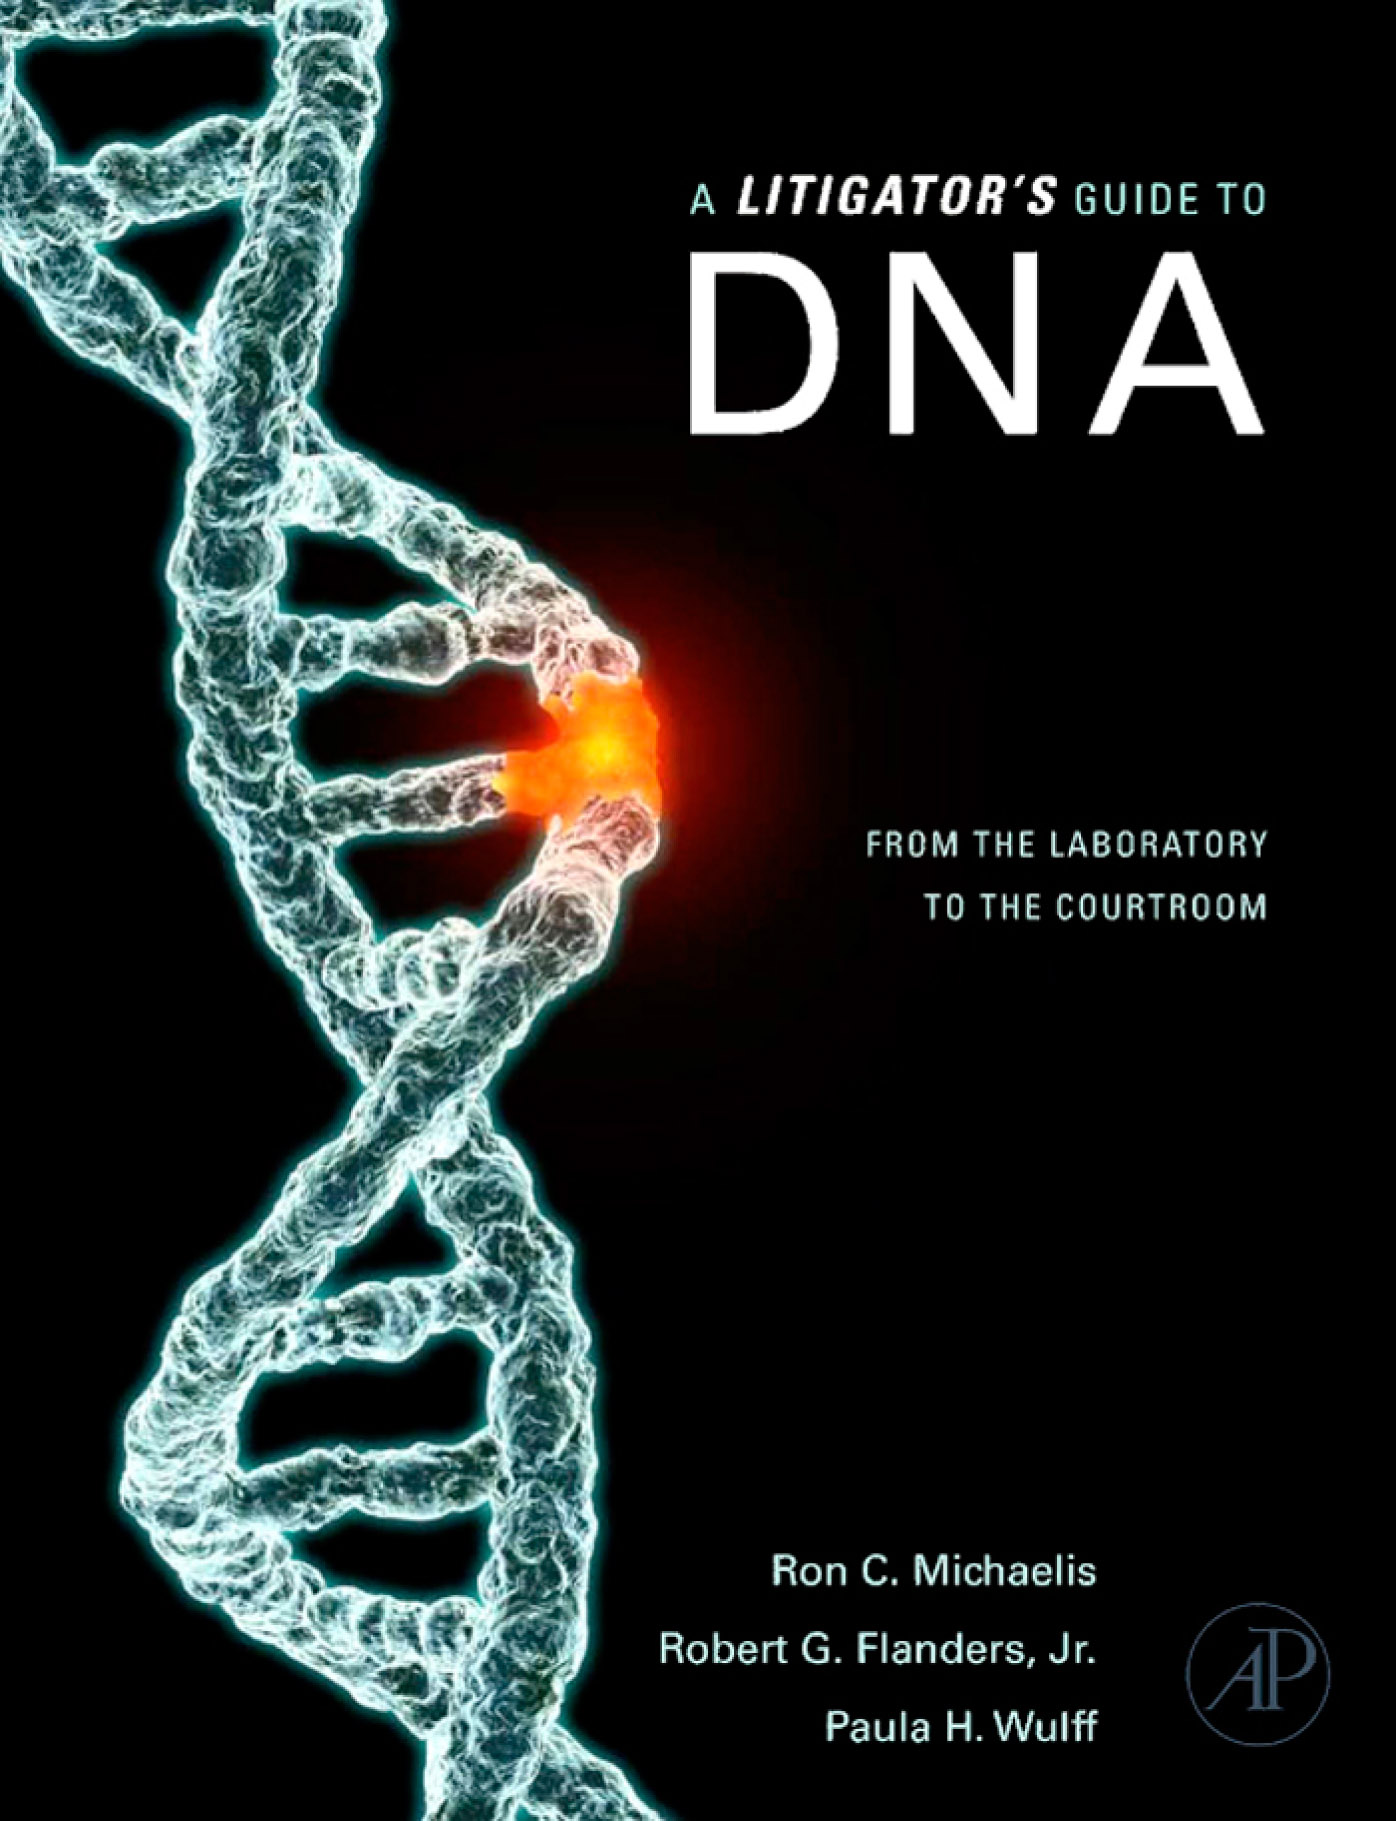 A Litigator's Guide to DNA From the Laboratory to the Courtroom